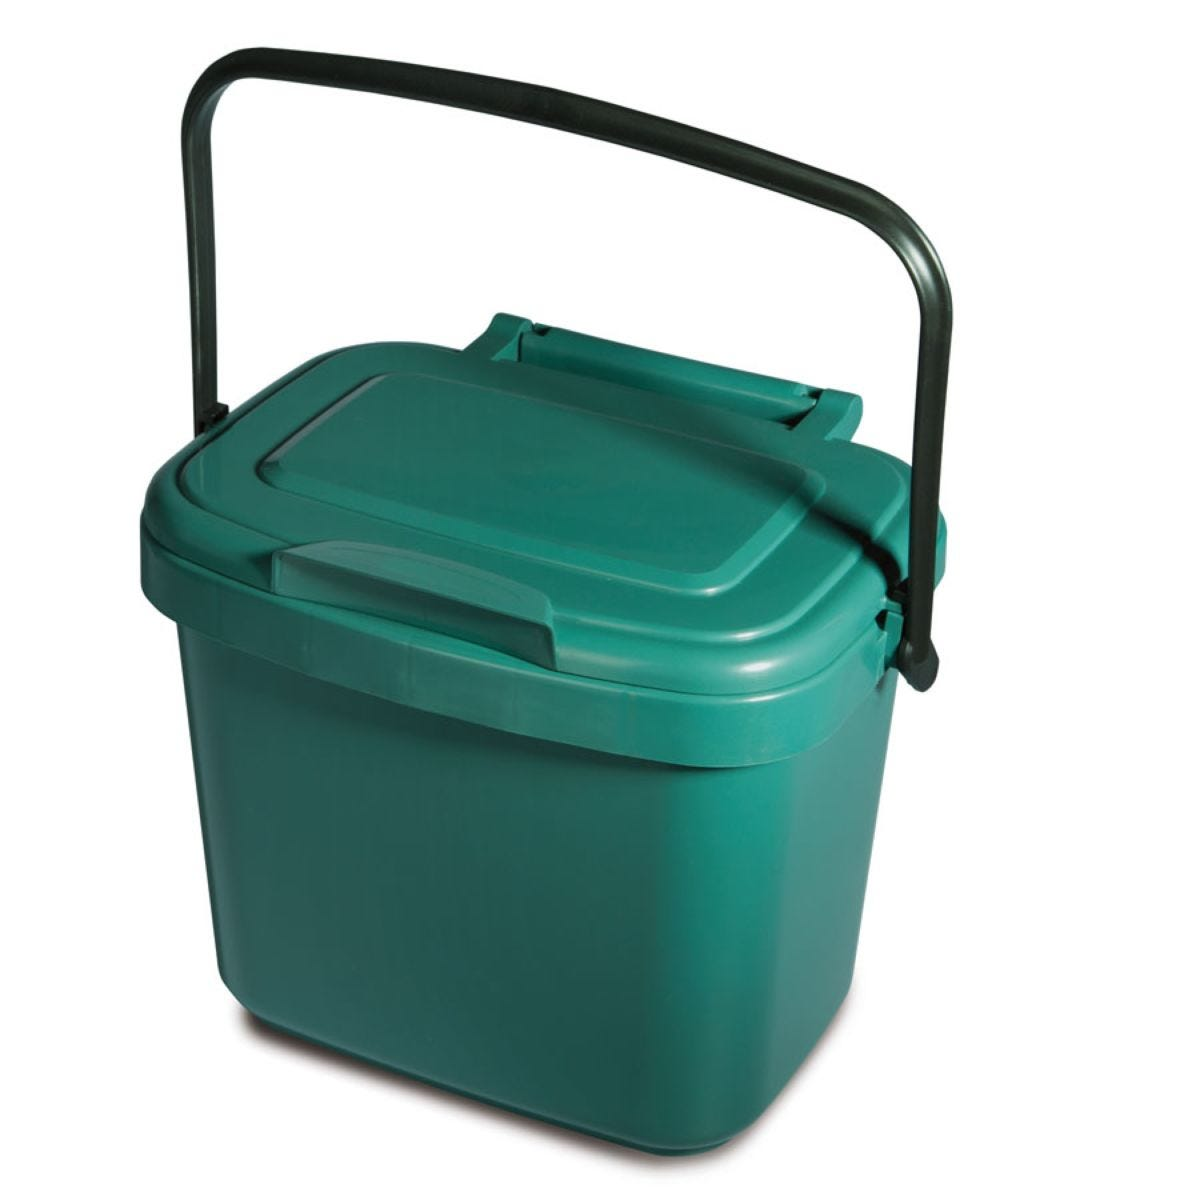 Addis 3L Kitchen Compost Caddy - Green